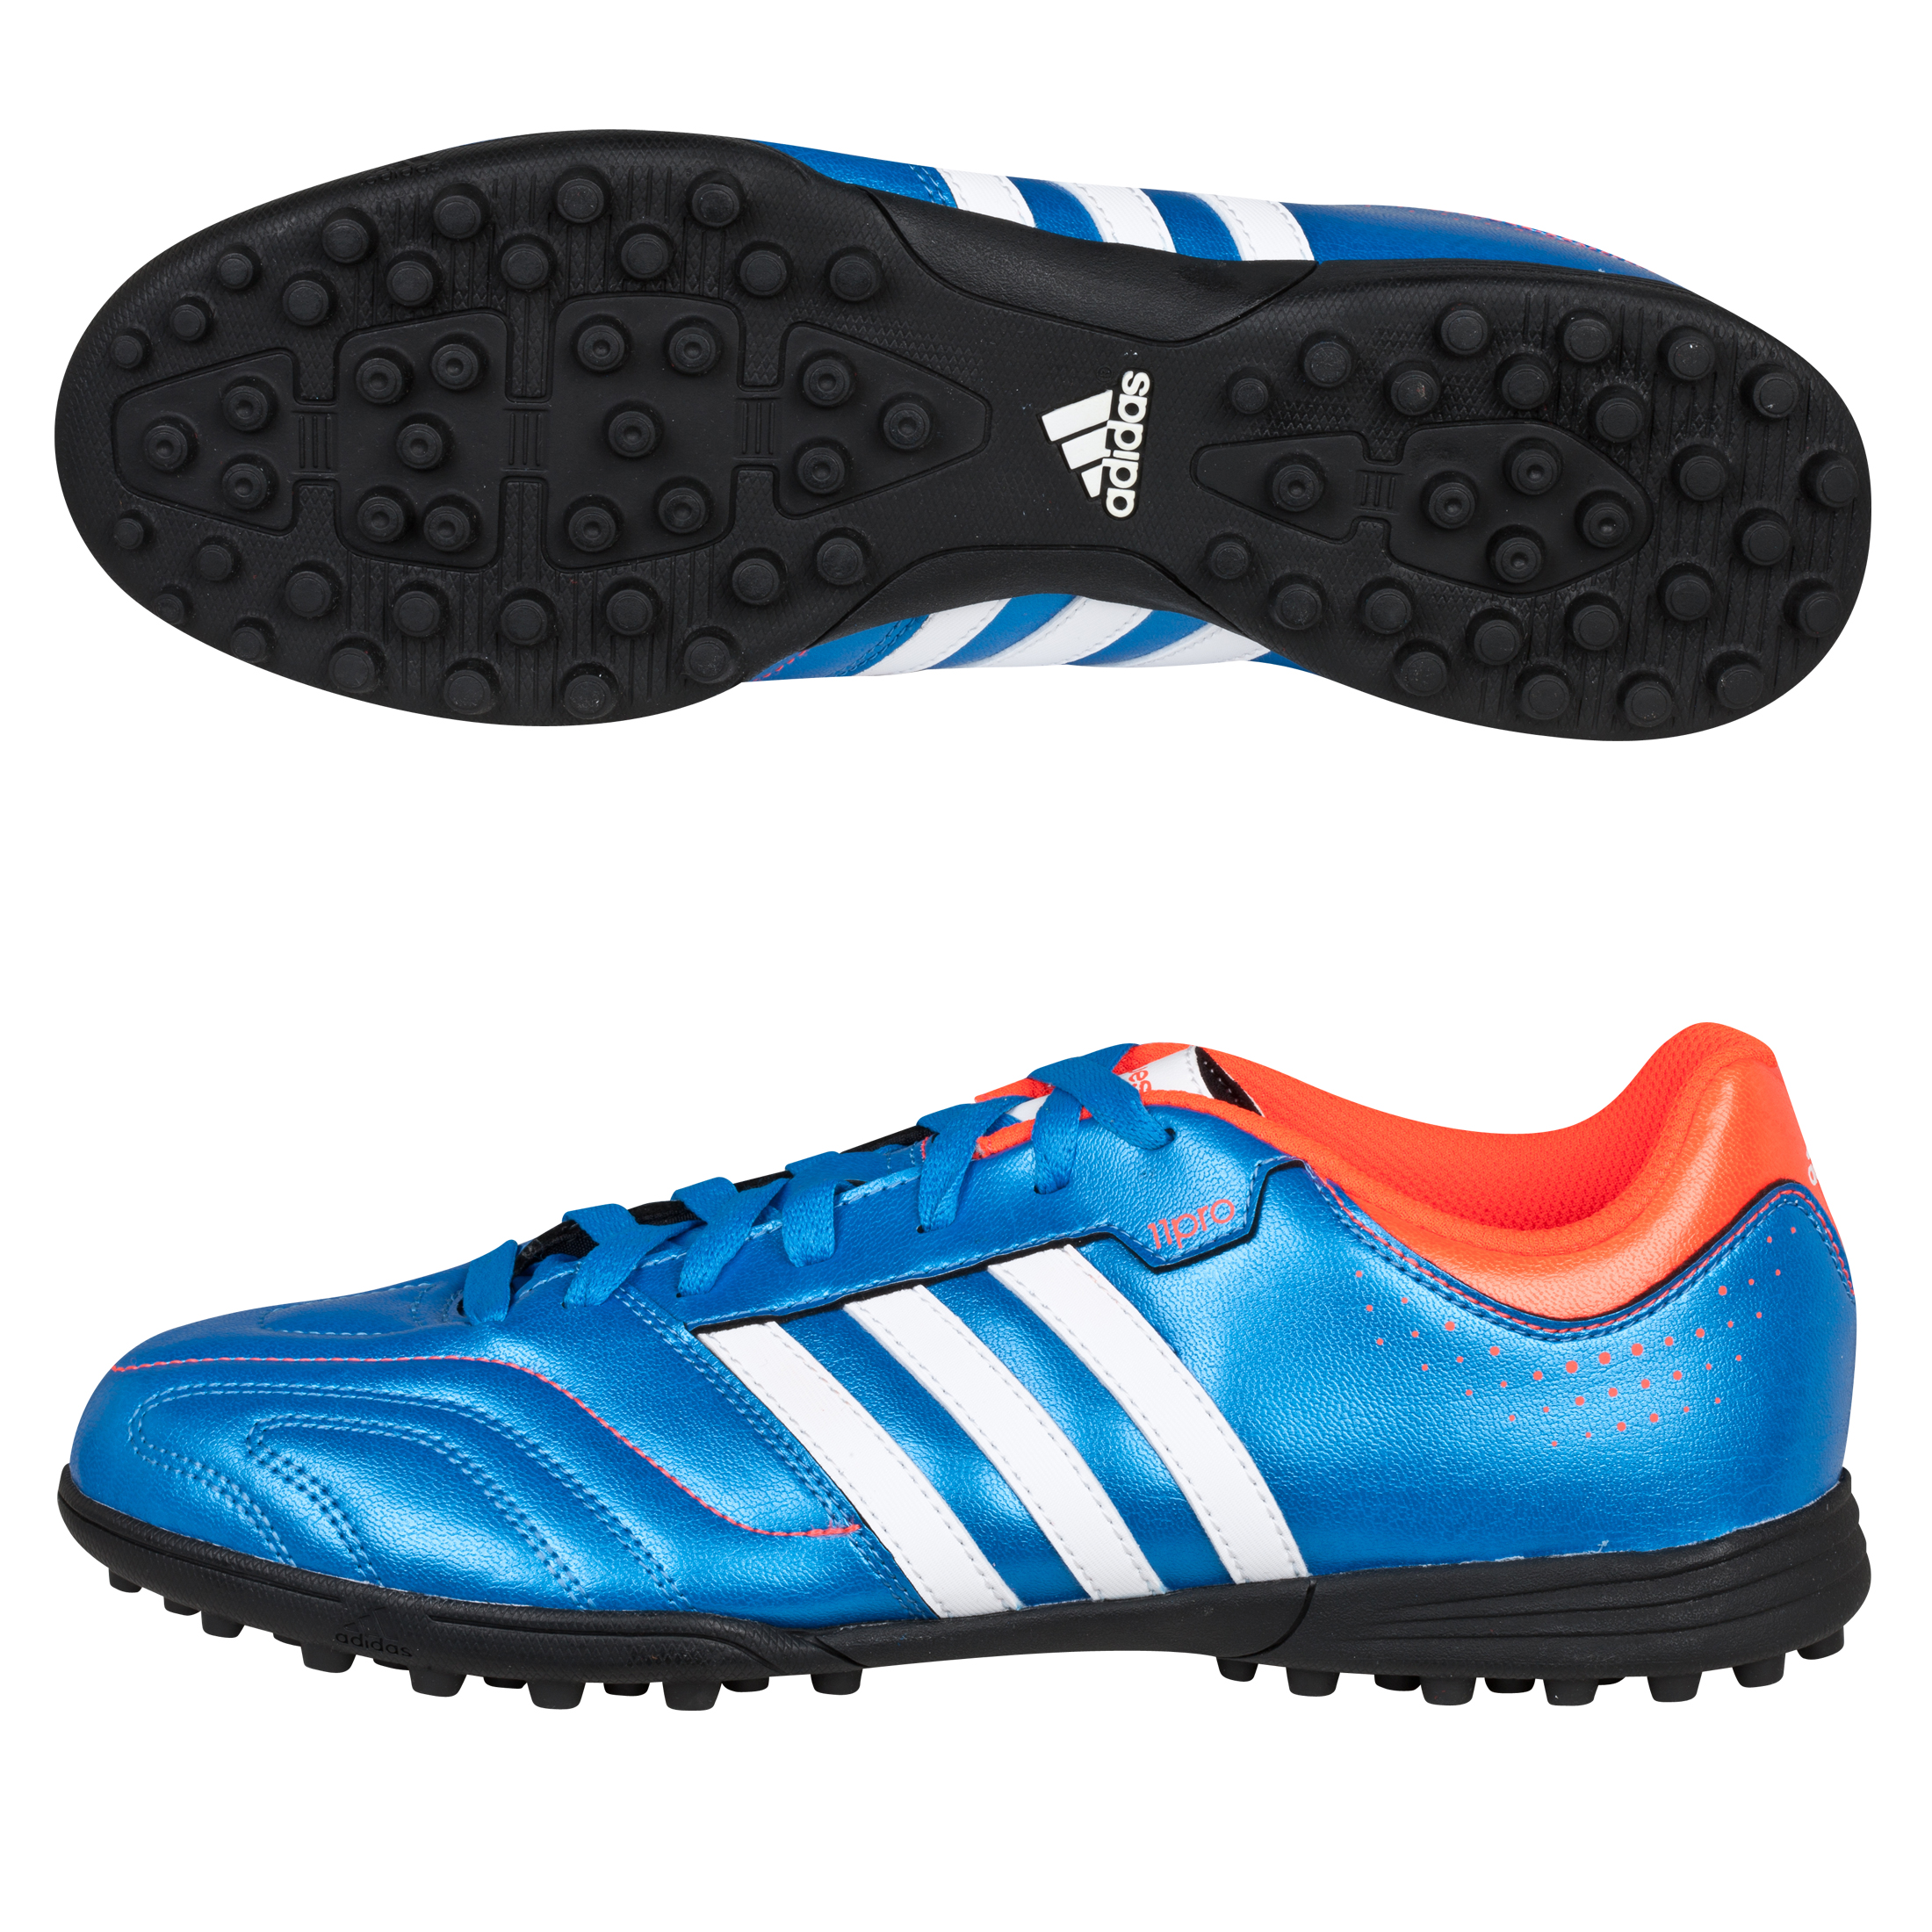 Adidas 11Questra TRX Astro Turf Trainers - Bright Blue/Running White/Infrared